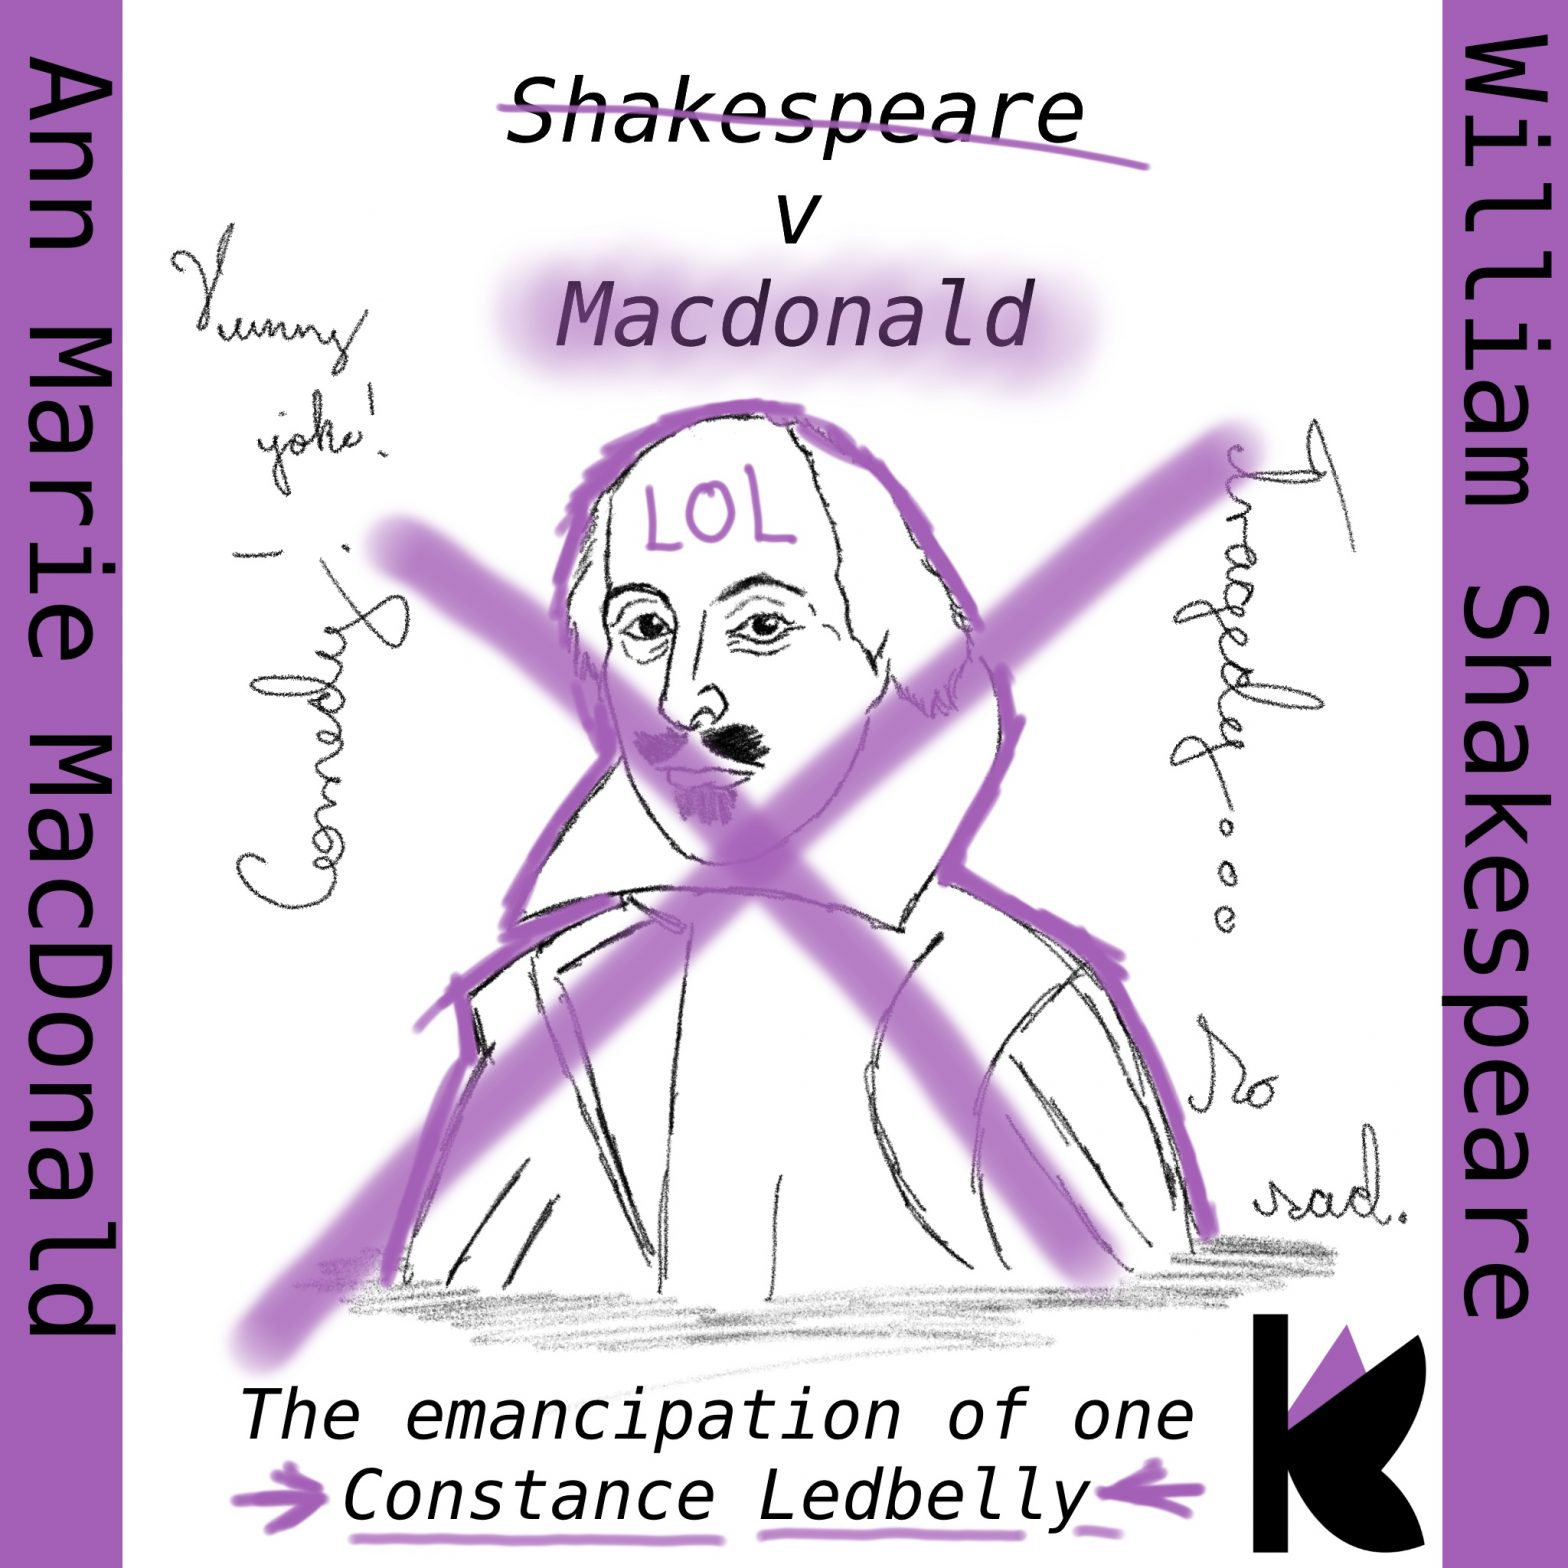 """William Shakespeare rewritten by Anne Marie Macdonald. Cover for the essay """"The Emancipation of one Constance Ledbelly."""""""